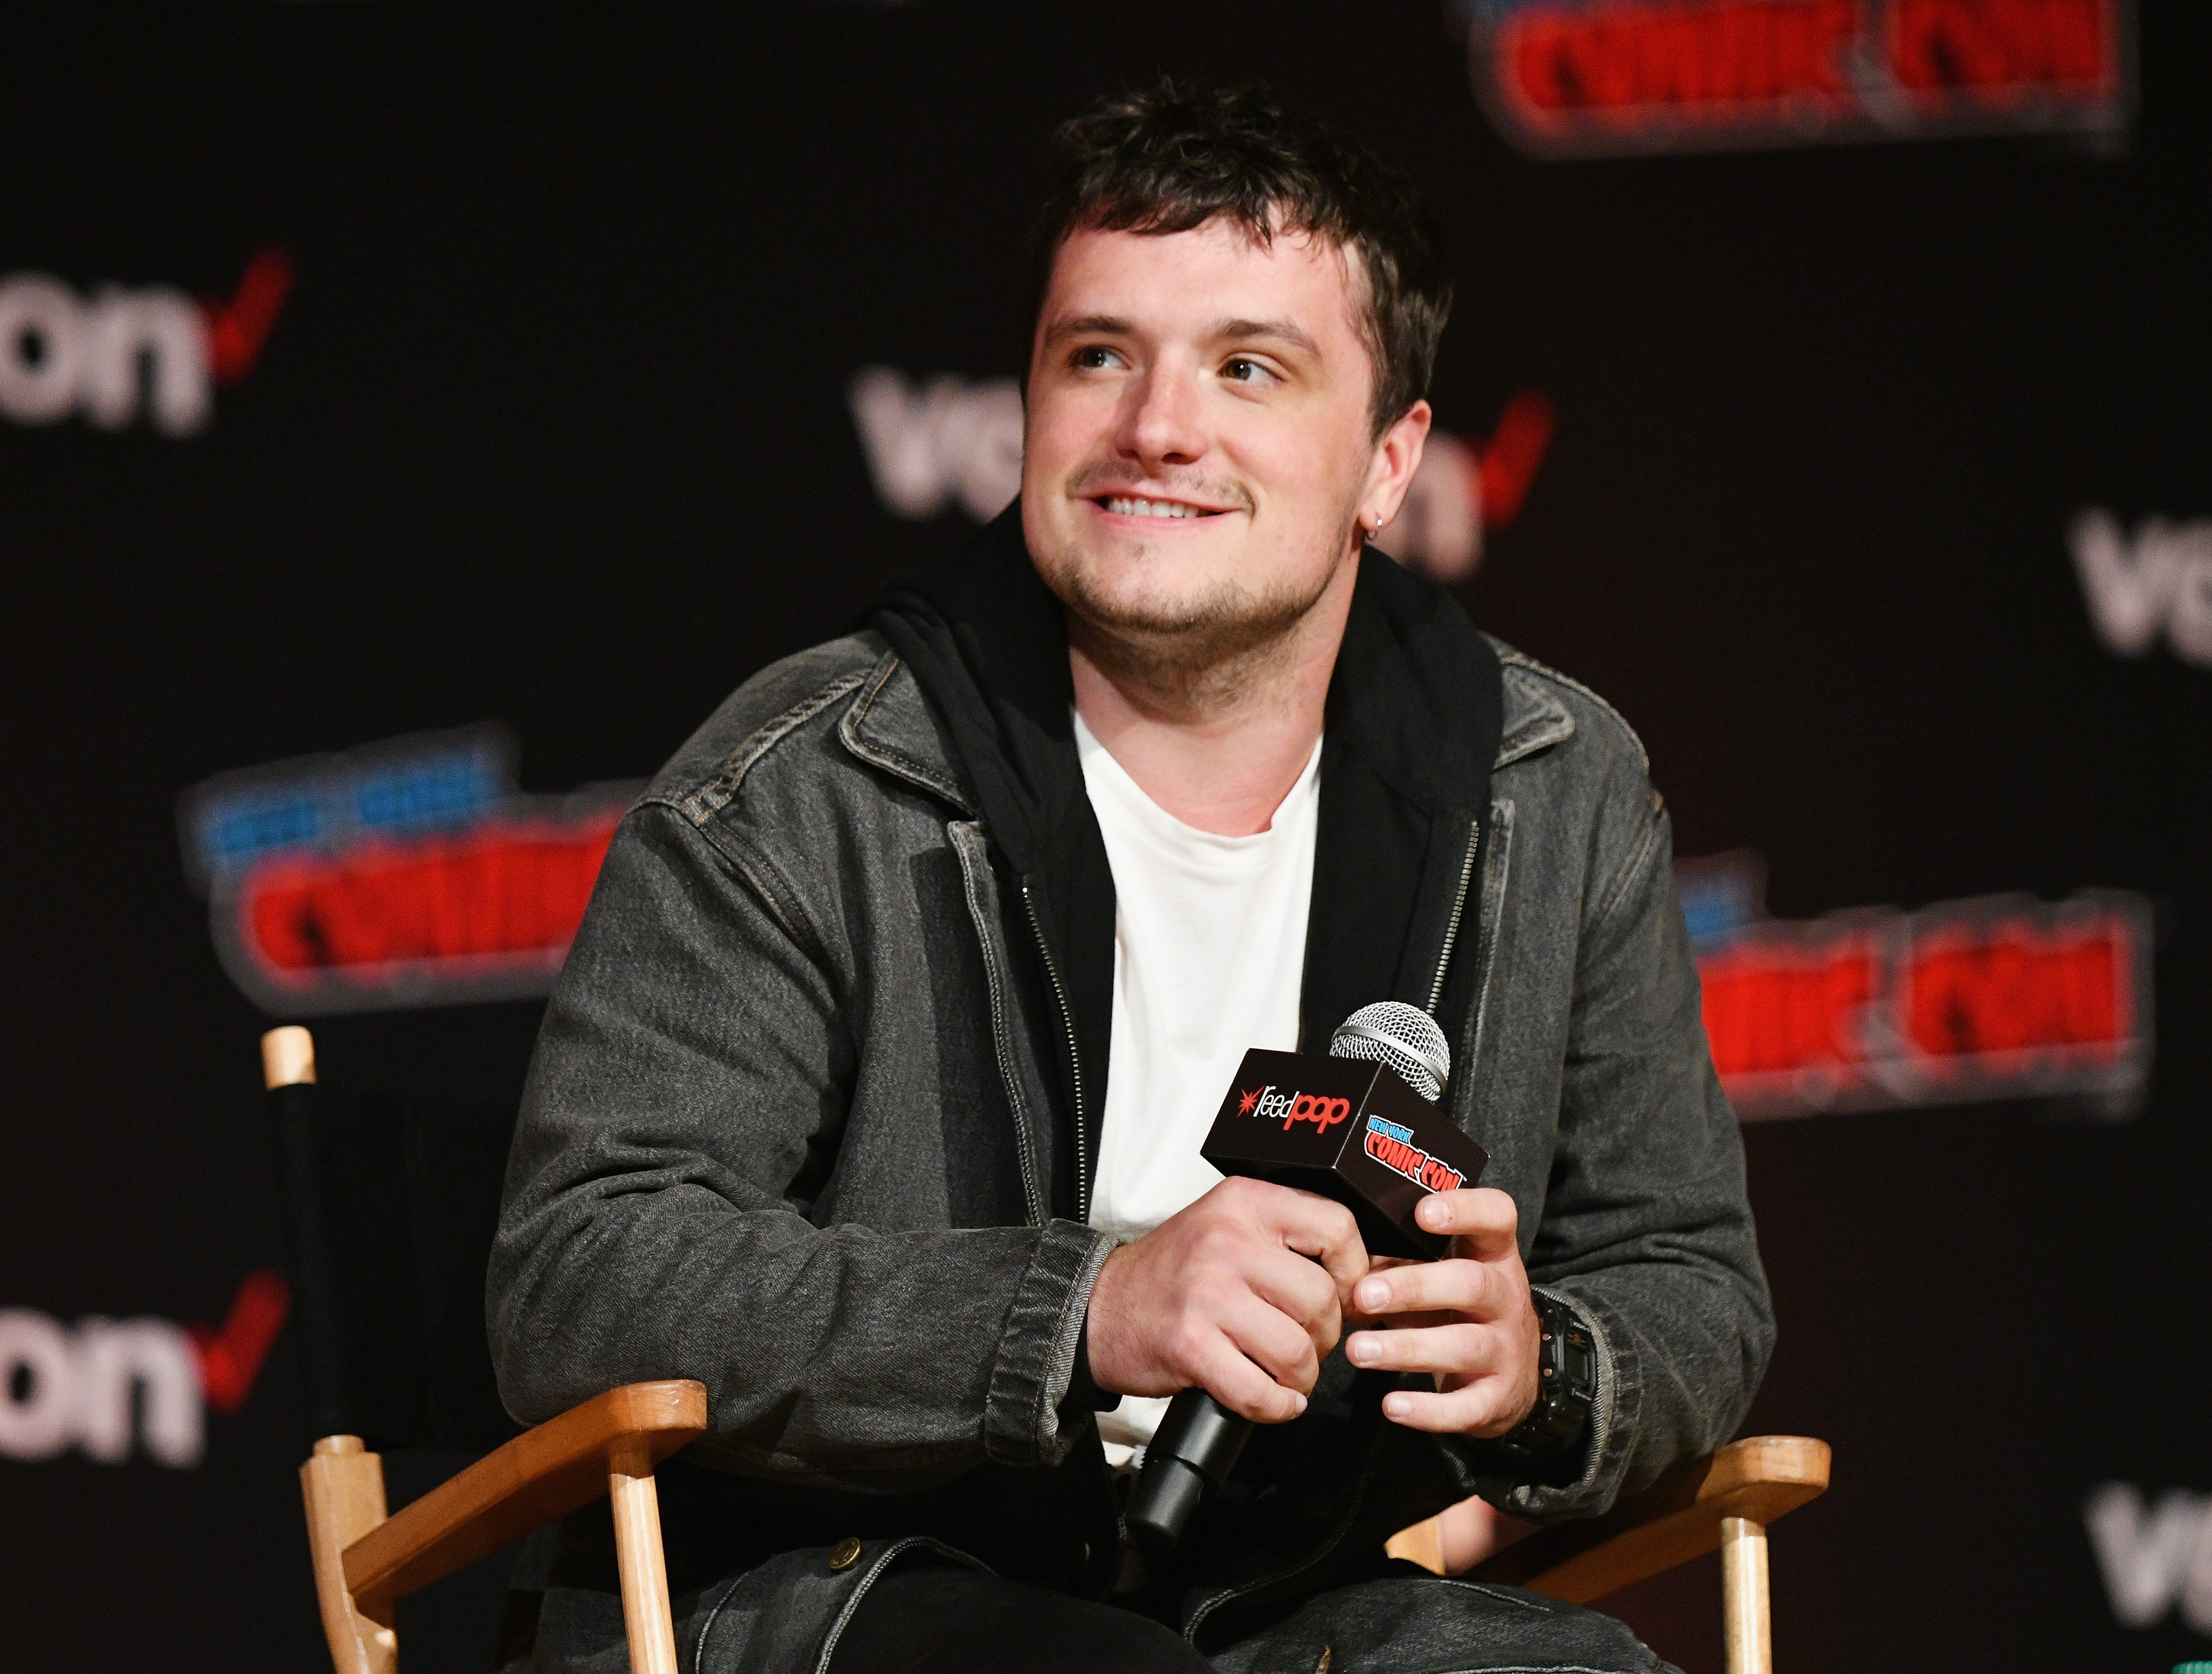 "NEW YORK, NY - OCTOBER 06:  Josh Hutcherson speaks onstage during Hulu's ""Future Man"" Panel at 2018 New York Comic Con at Javits Center on October 6, 2018 in New York City.  (Photo by Bryan Bedder/Getty Images for Hulu) ORG XMIT: 775238048 ORIG FILE ID: 1046706828"